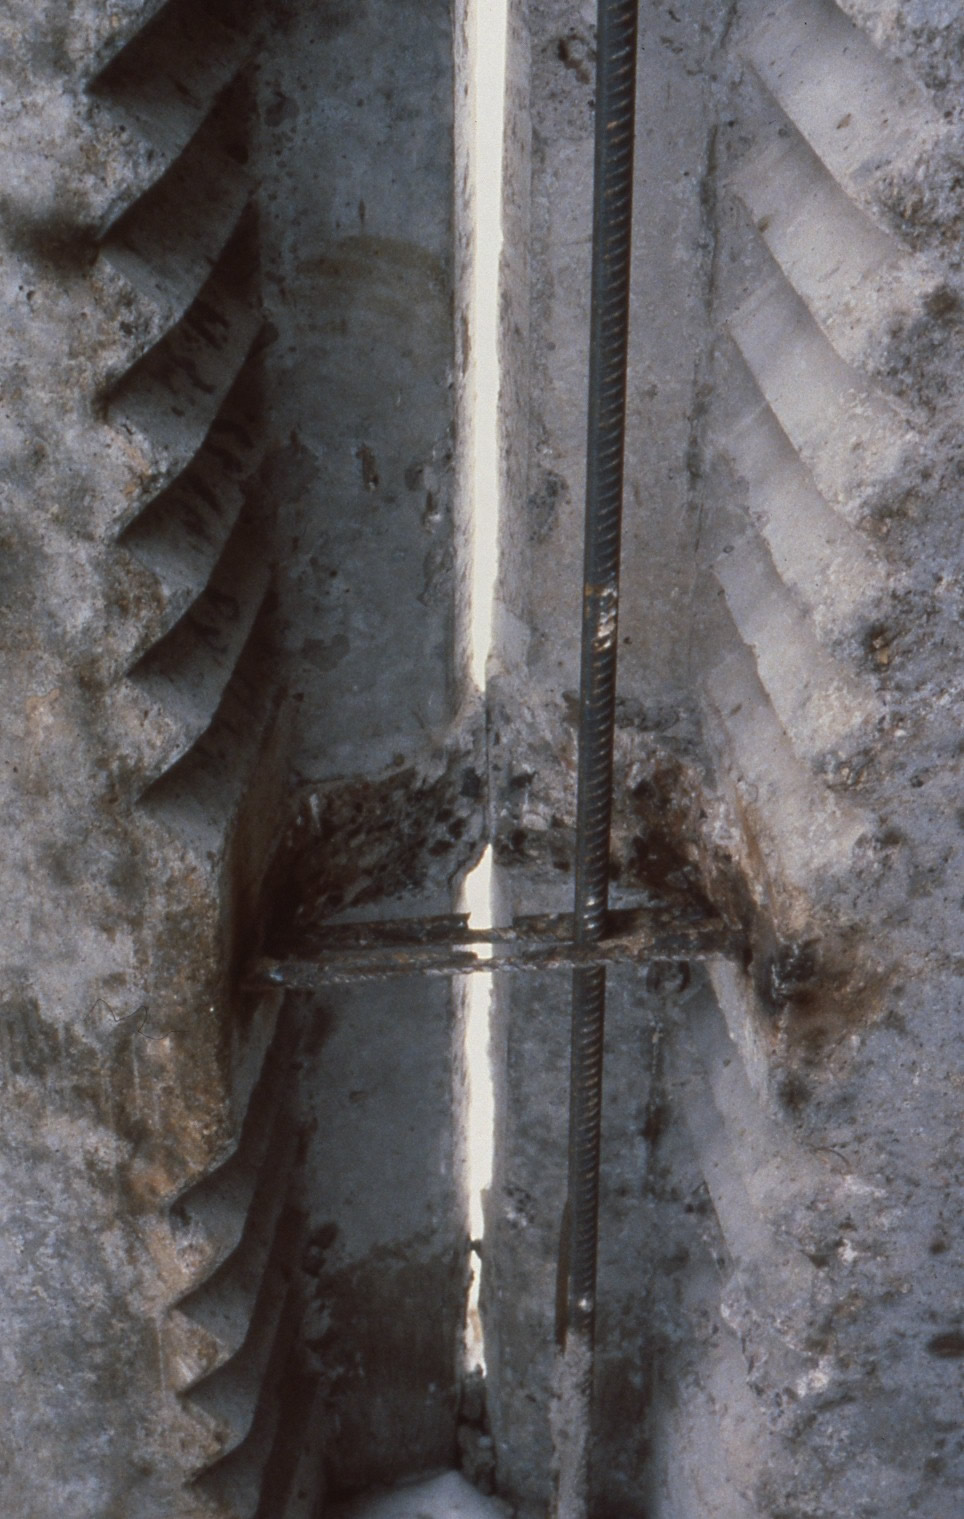 Exterior wall intersection of large-panel building with welded ties; shown before casting concrete was placed. Note serrated panel edges for shear transfer (Wyllie, 1989).